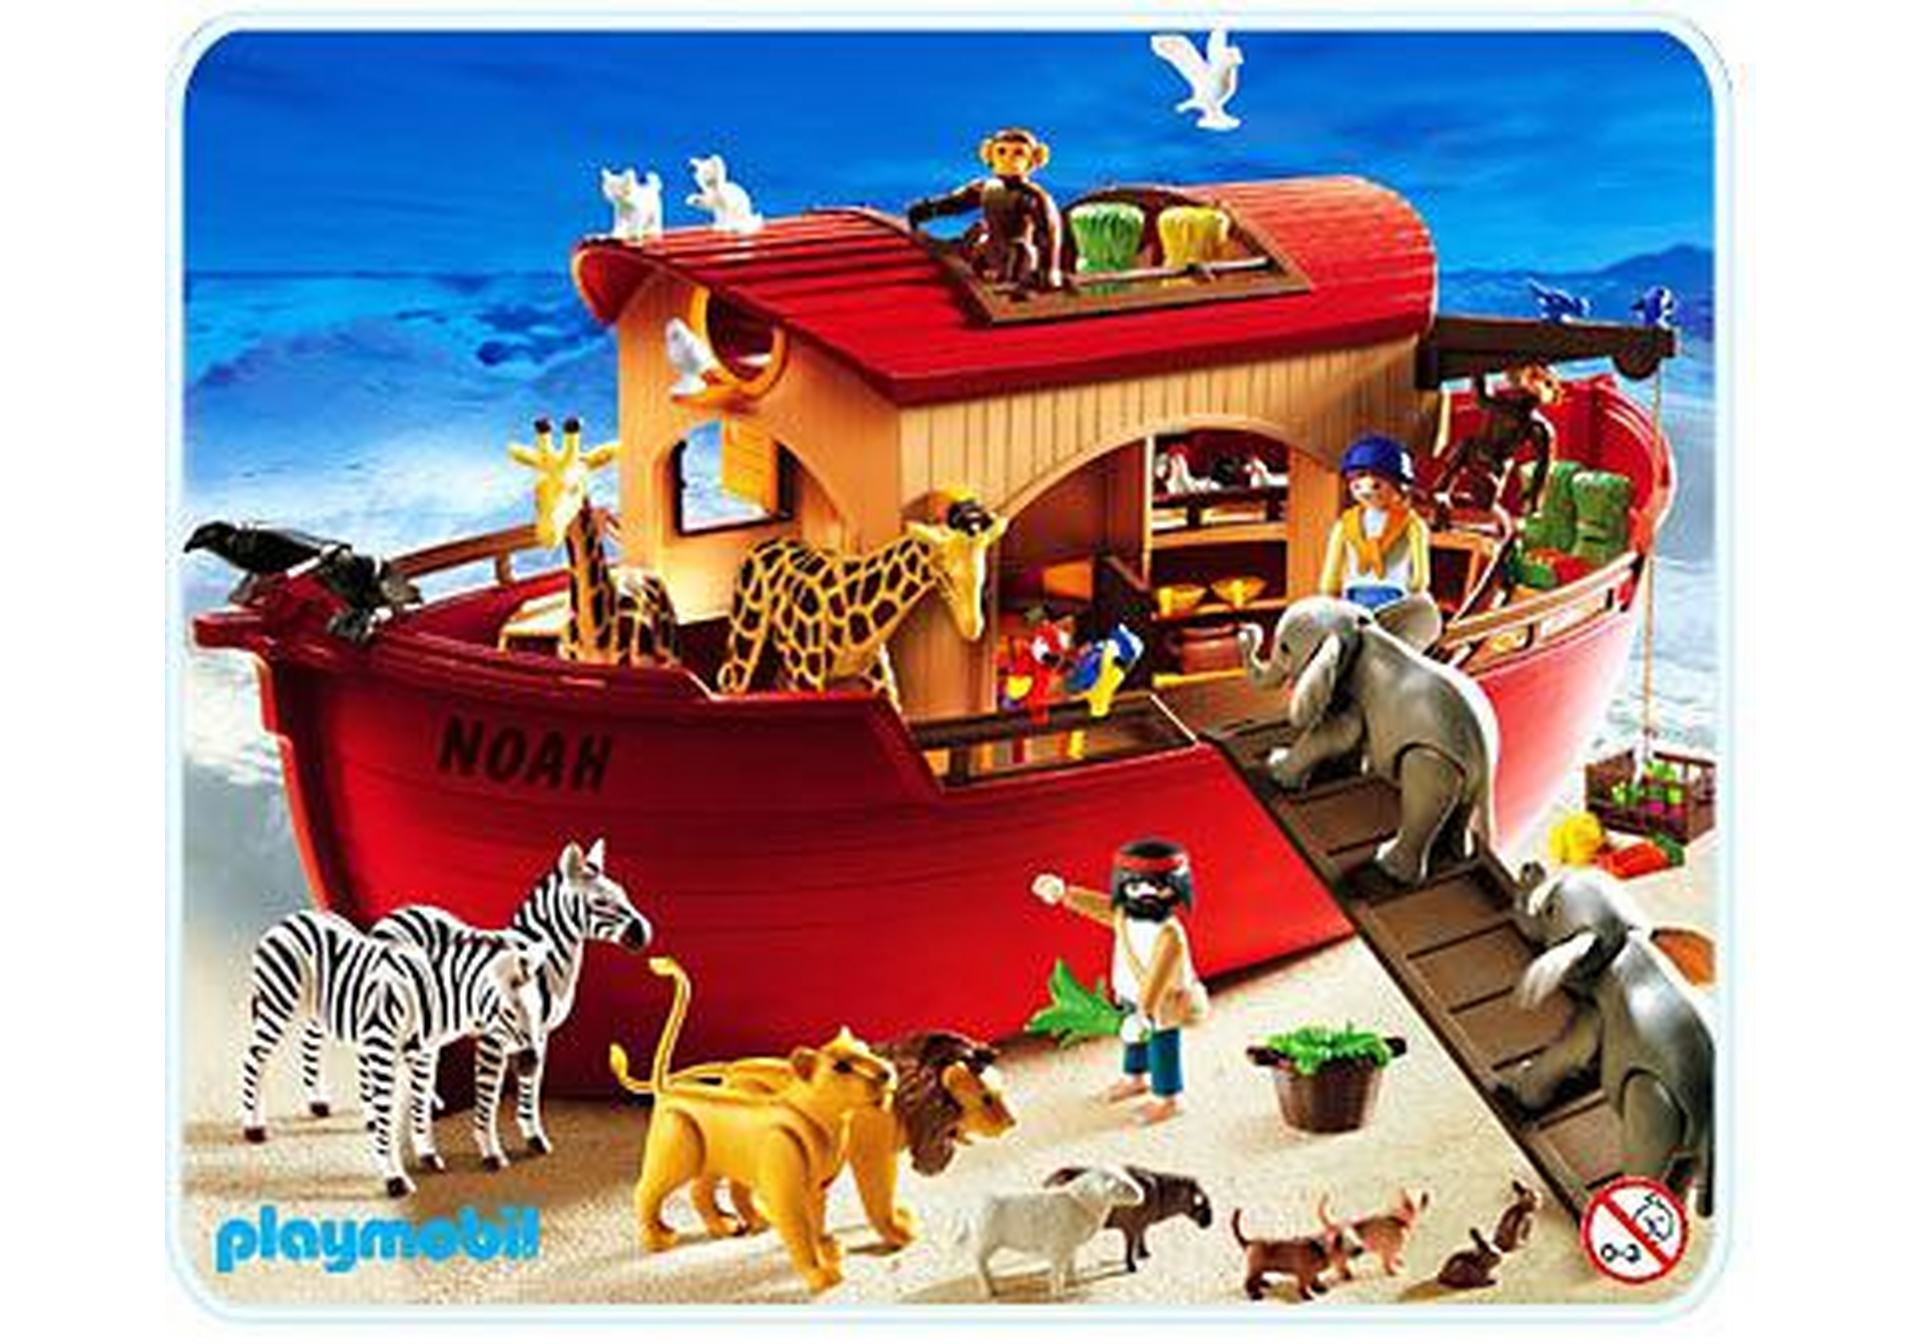 arche de no 3255 c playmobil france. Black Bedroom Furniture Sets. Home Design Ideas